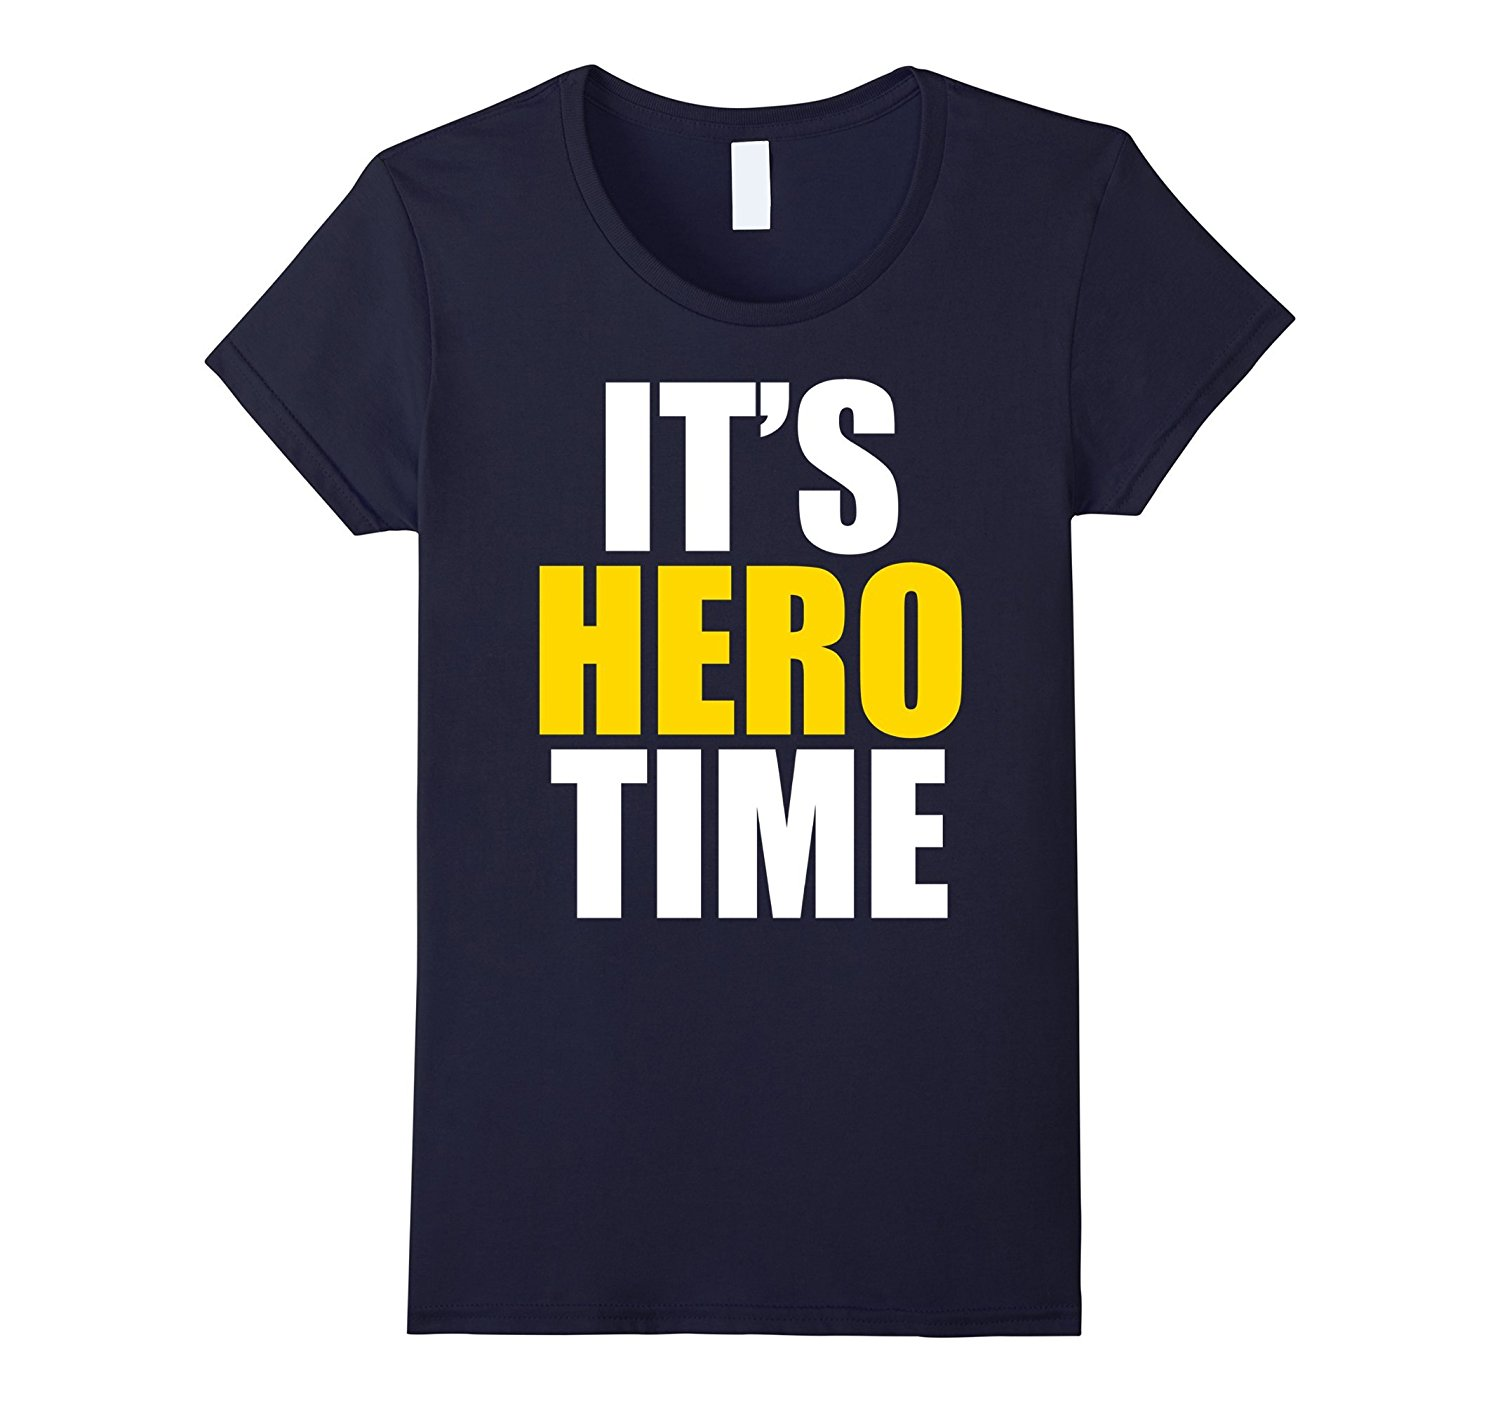 Black t shirt quotes - Funny It S Hero Time Tshirt Quotes Sayings Phrases Gift Women Flash Summer Short Sleeves